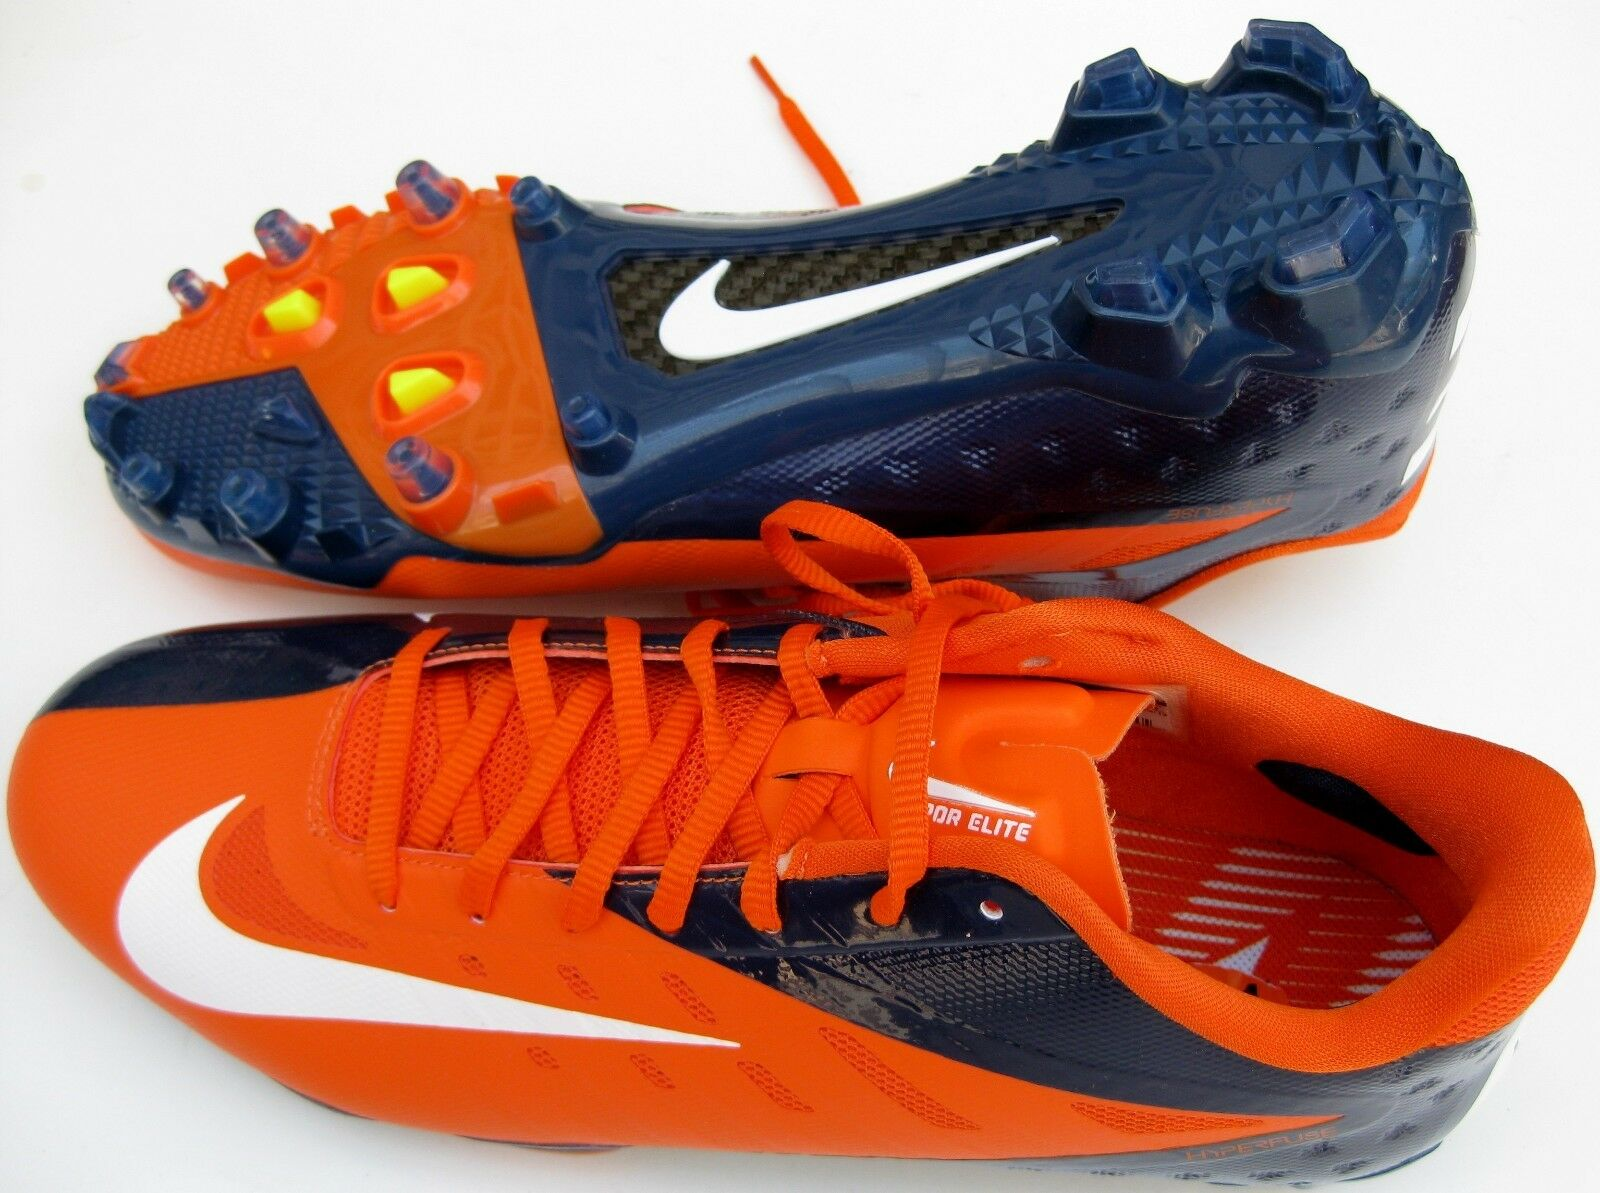 New Nike Vapor elite low TD NFL Football Cleats Men size 11 534772 810 NFL The latest discount shoes for men and women